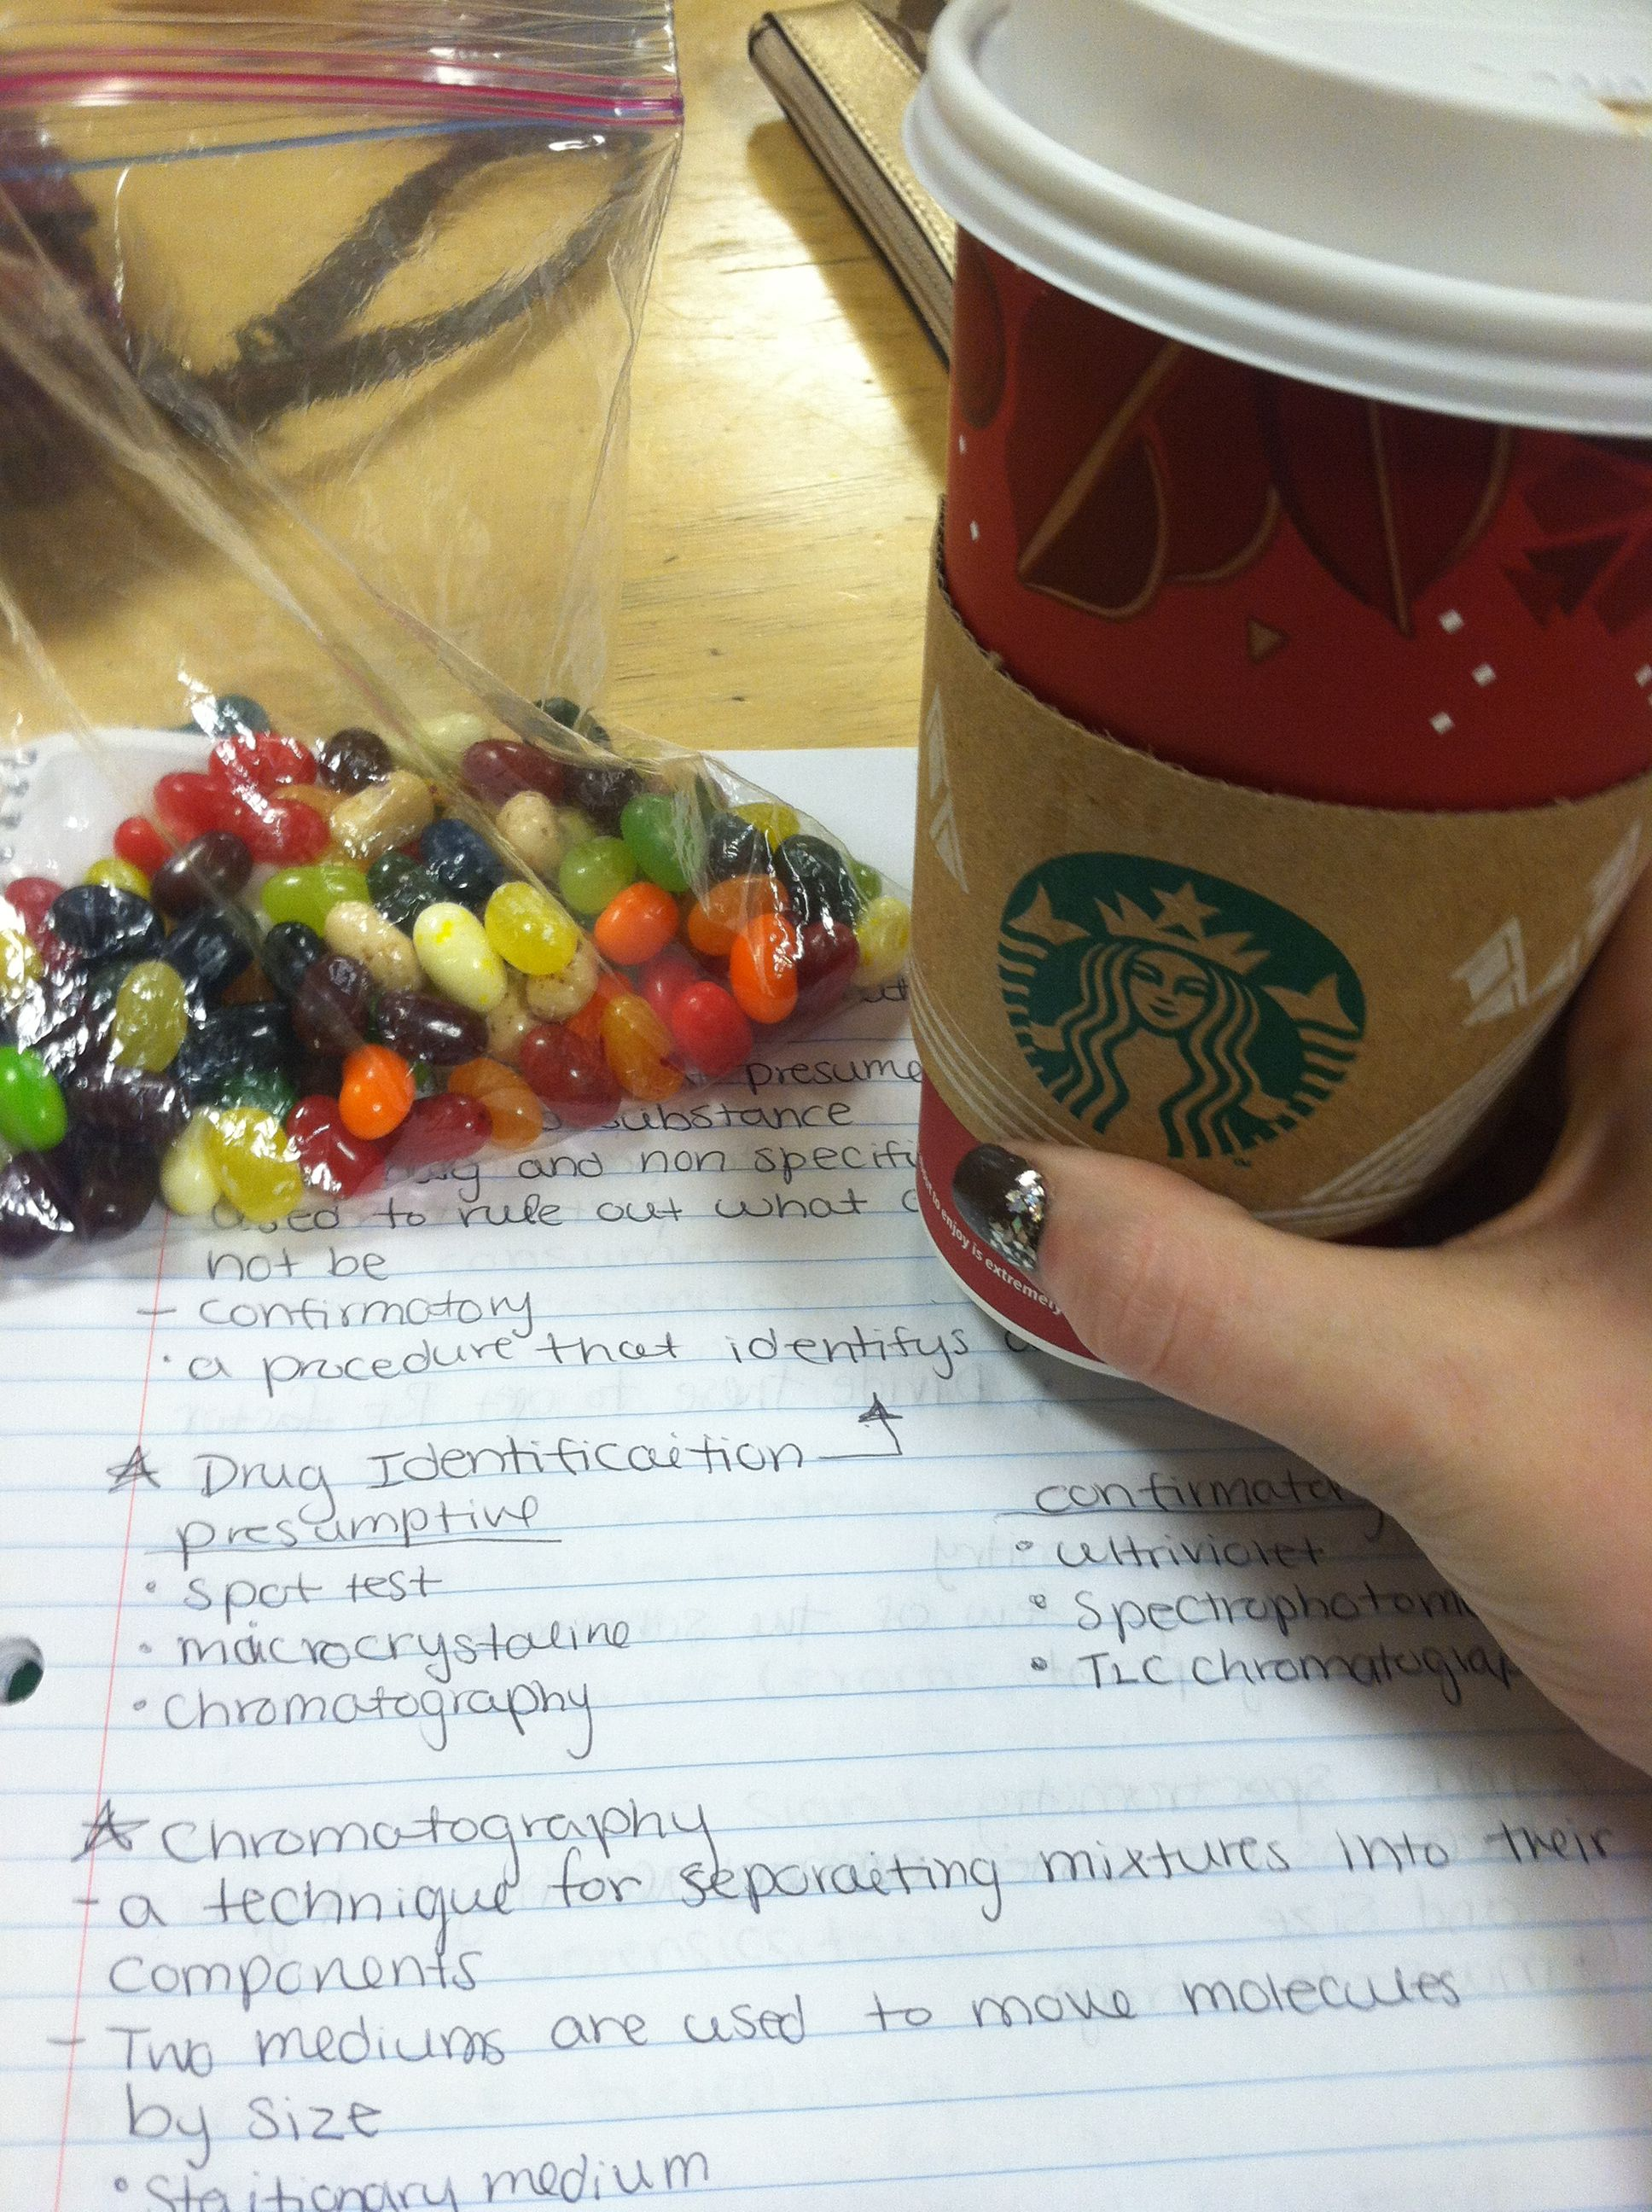 Jelly beans and coffee = perfect studying motivation